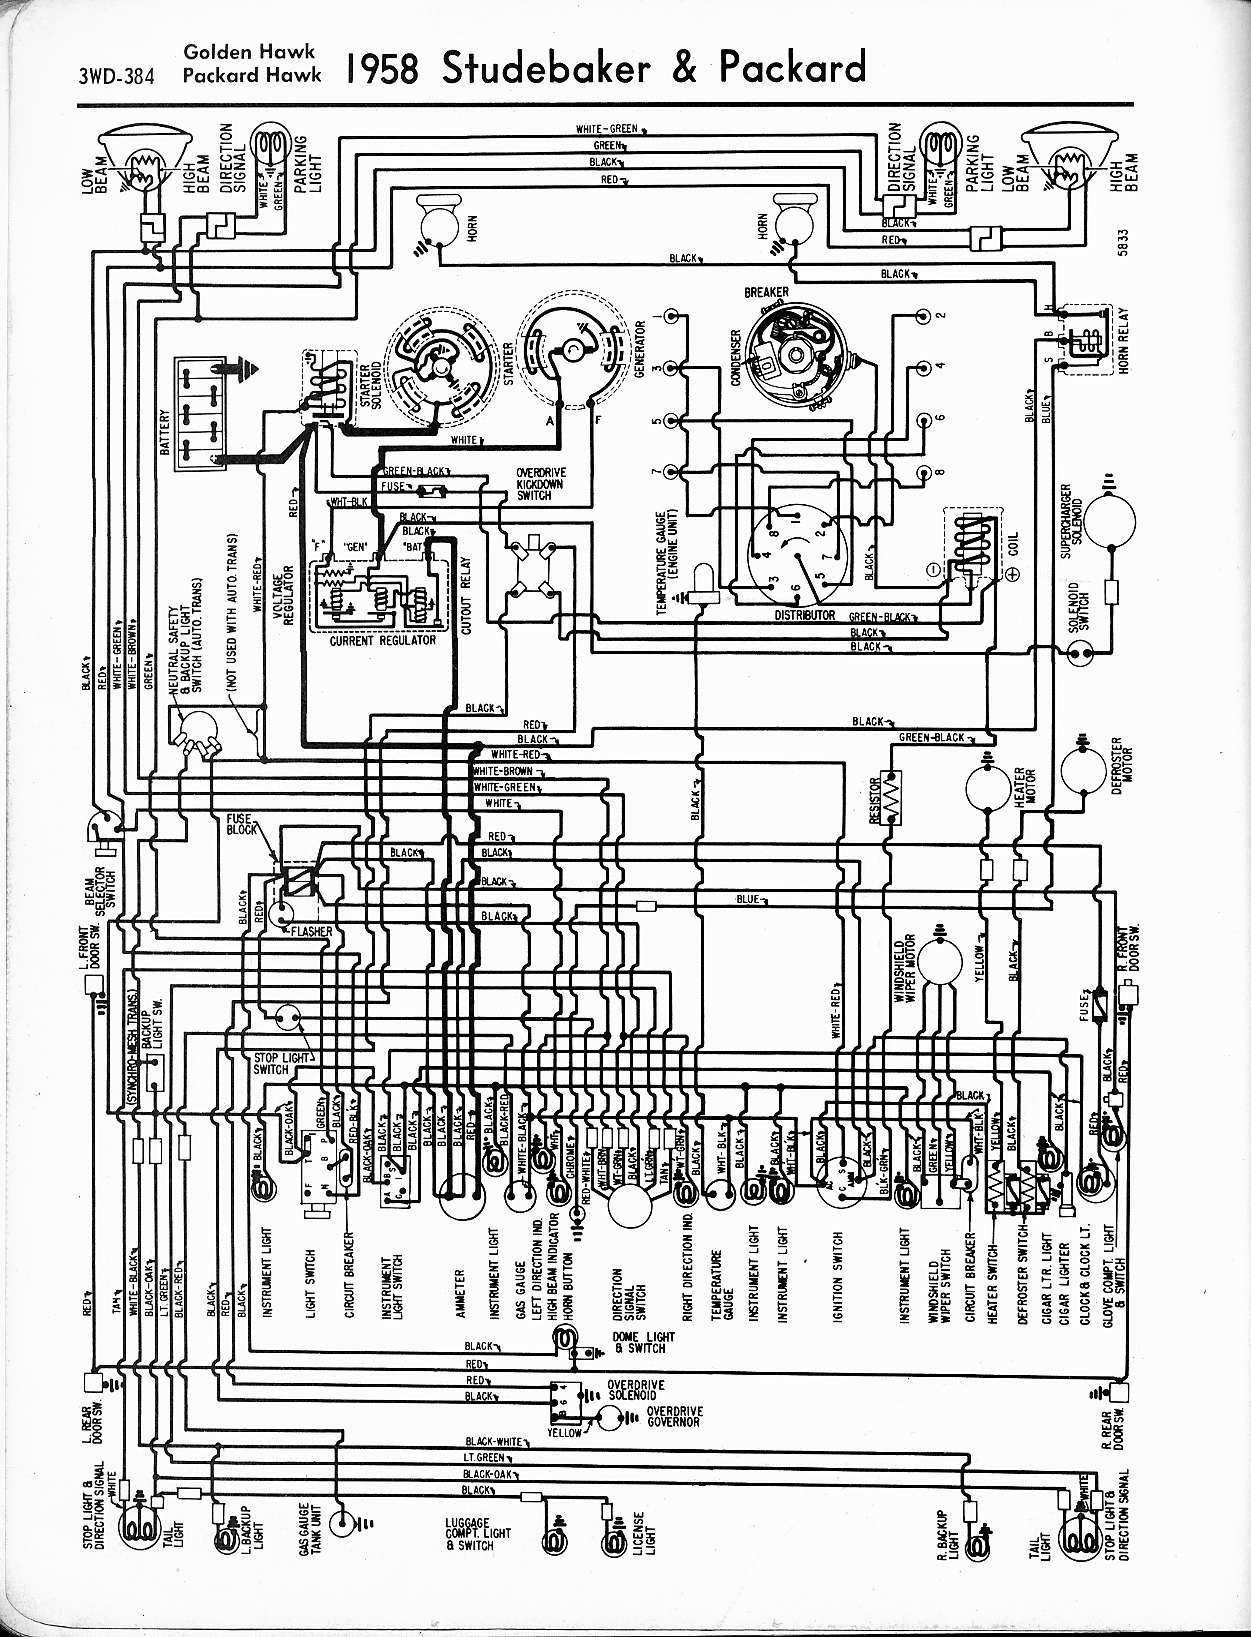 1978 dodge truck wiring diagrams wire center 1978 dodge power wagon wiring diagram wire center u2022 rh pepsicolive co dodge electronic ignition wiring diagram 87 dodge d150 wiring diagram publicscrutiny Image collections